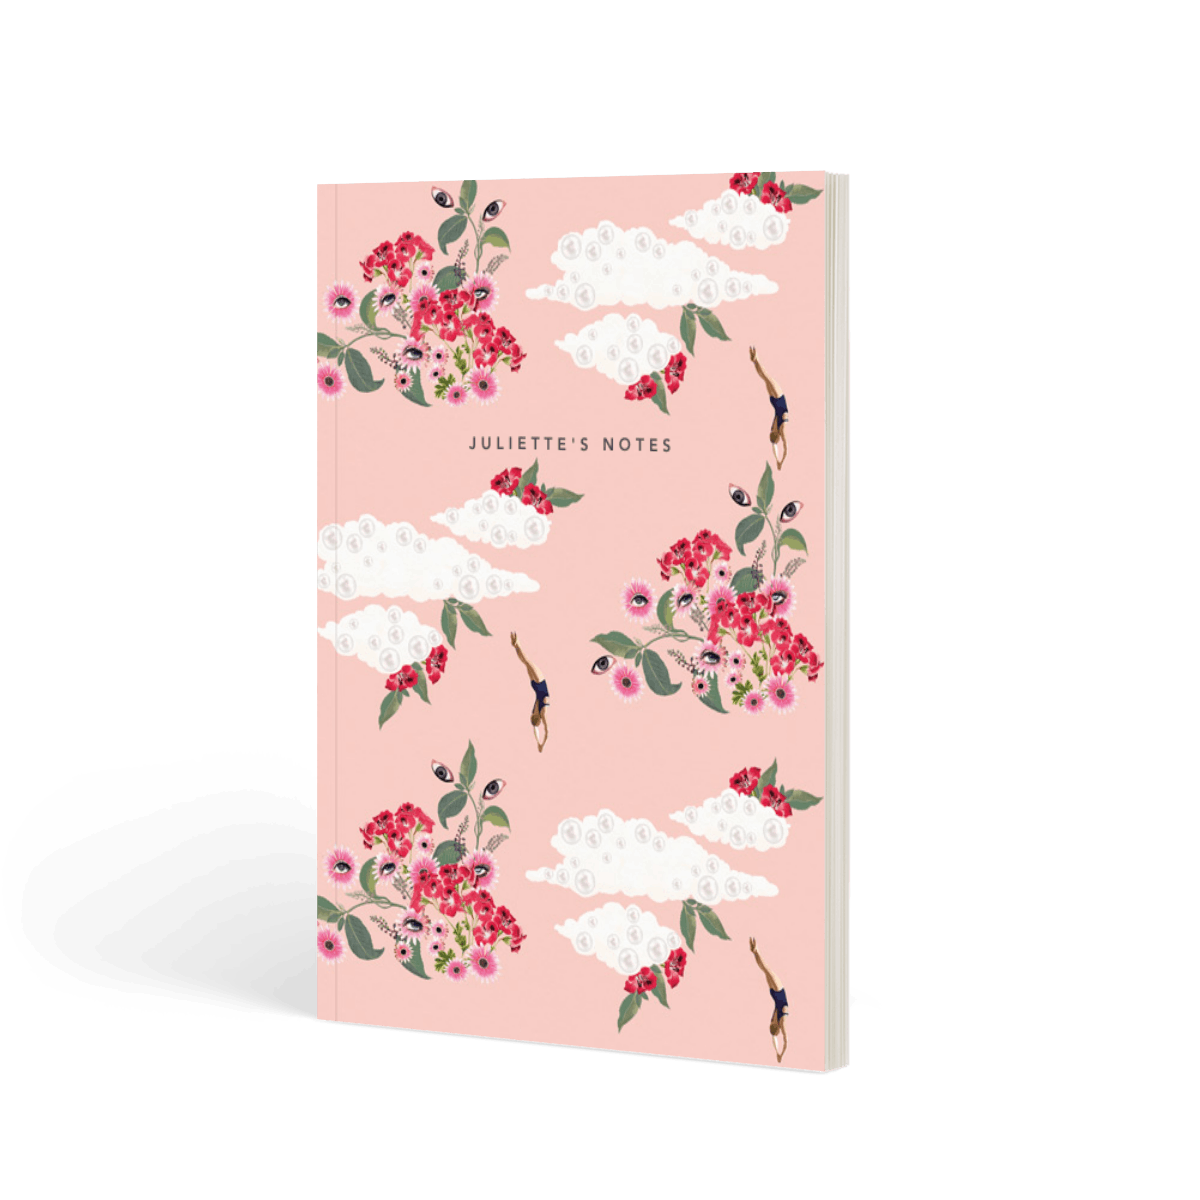 Https%3a%2f%2fwww.papier.com%2fproduct image%2f24313%2f6%2fpink dreamer 6085 front 1498207634.png?ixlib=rb 1.1